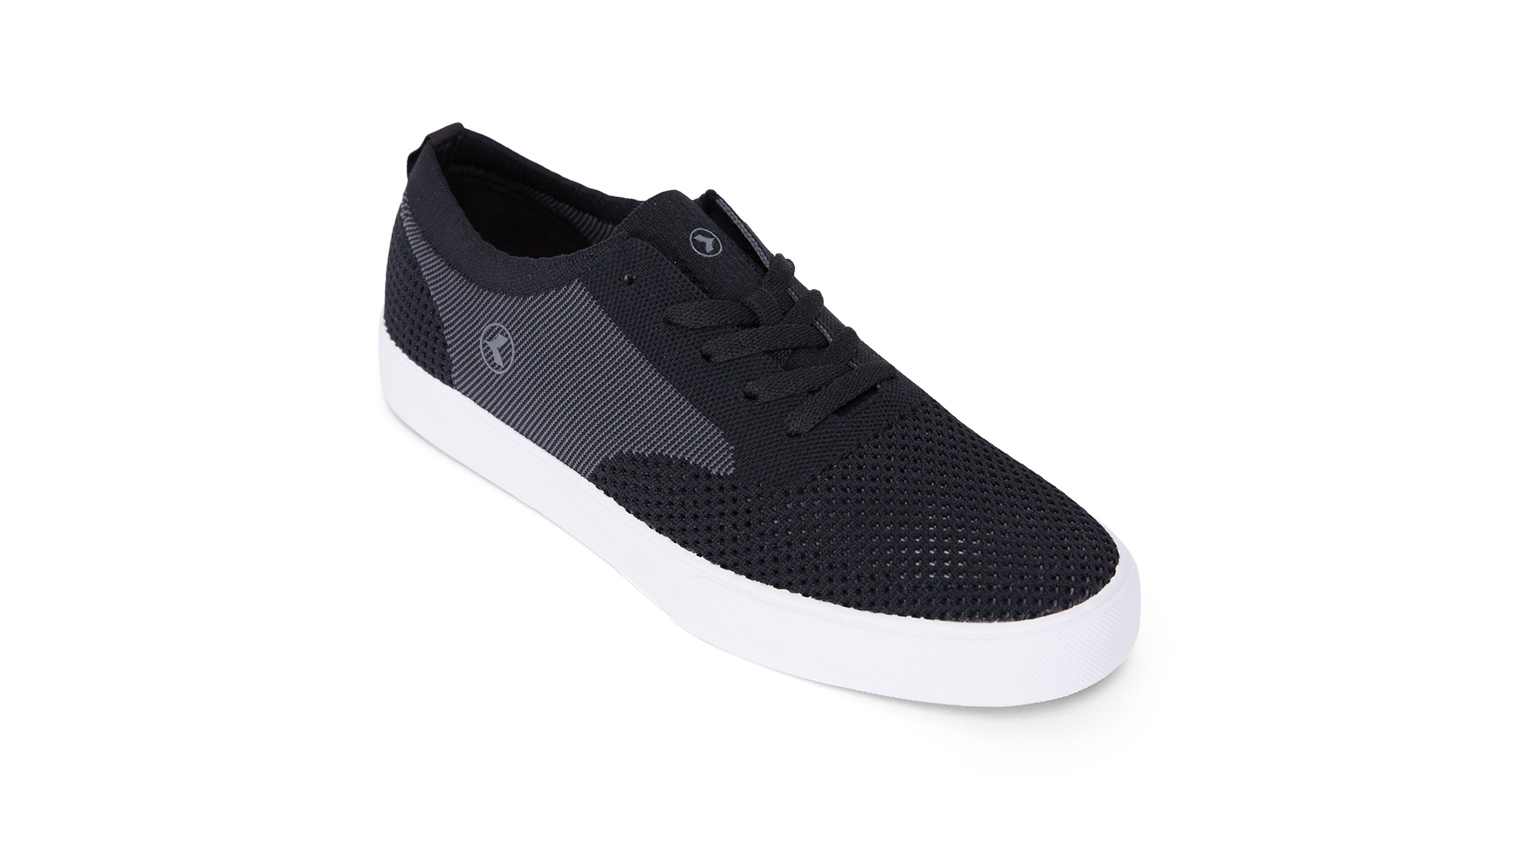 KUSTOM SHOES BURLEIGH KNIT SHOE / BLACK GREY